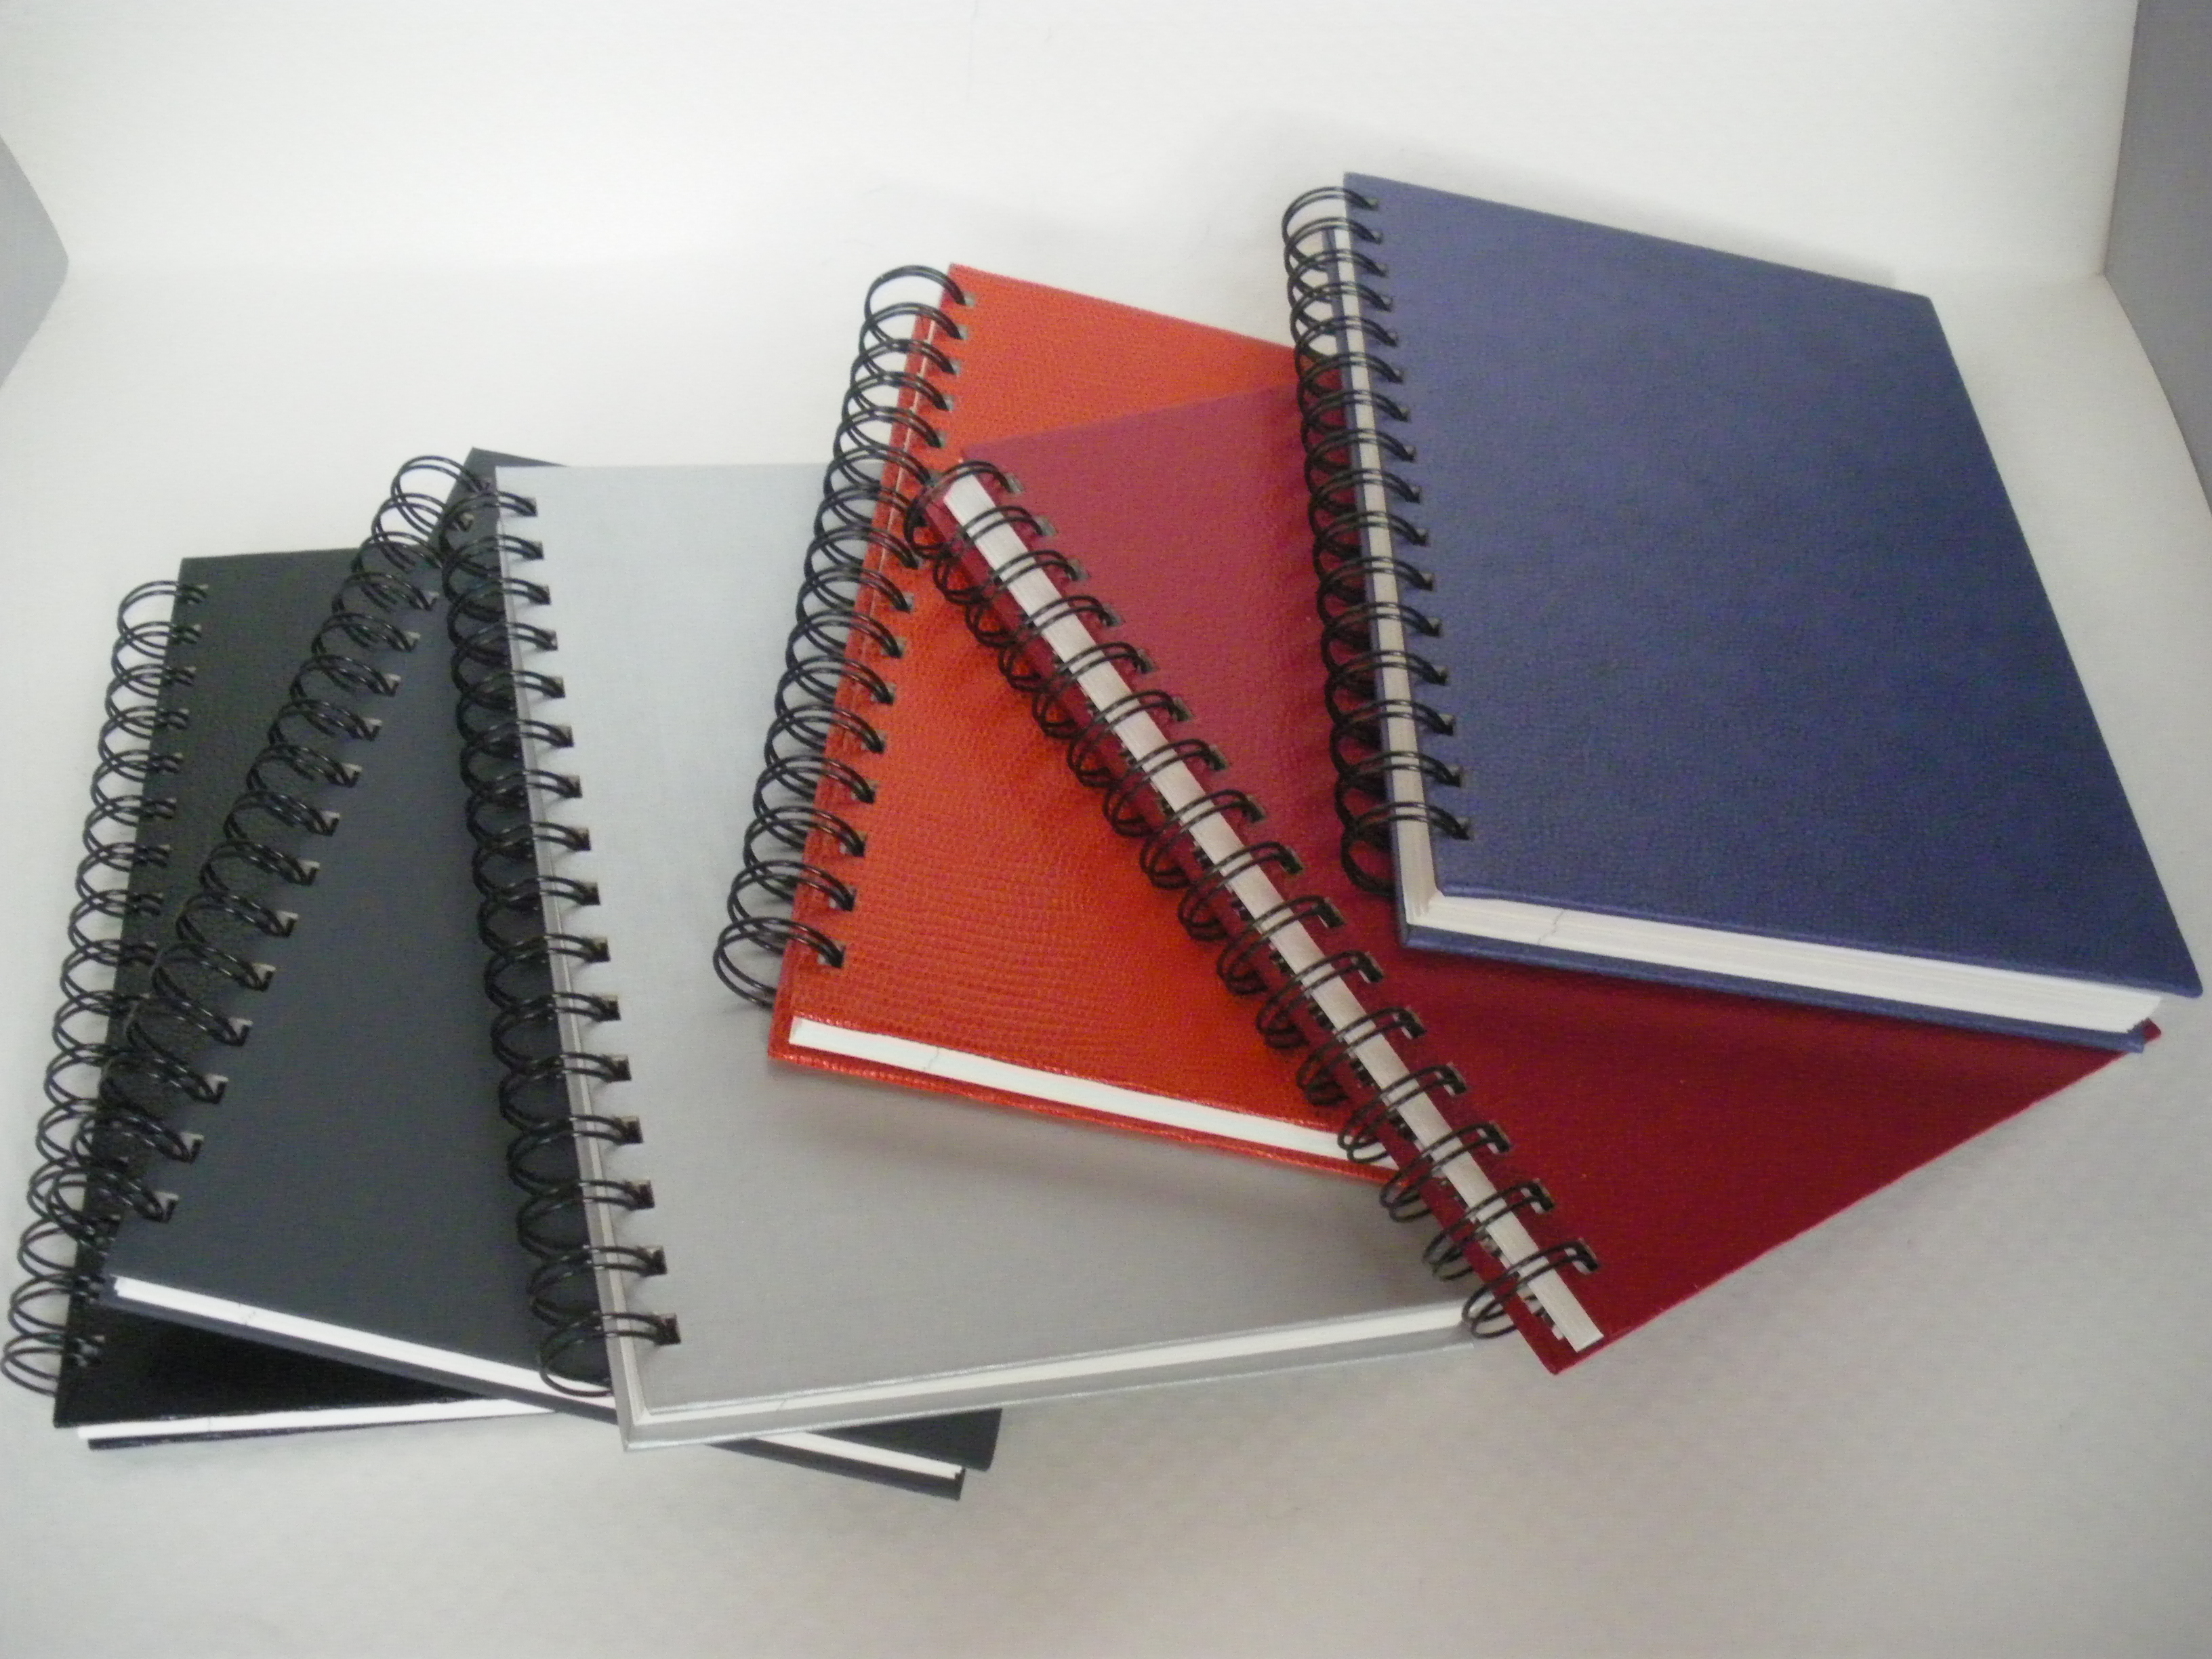 PU Leather Spiral Office Notebook - PU Leather Spiral Office Notebook